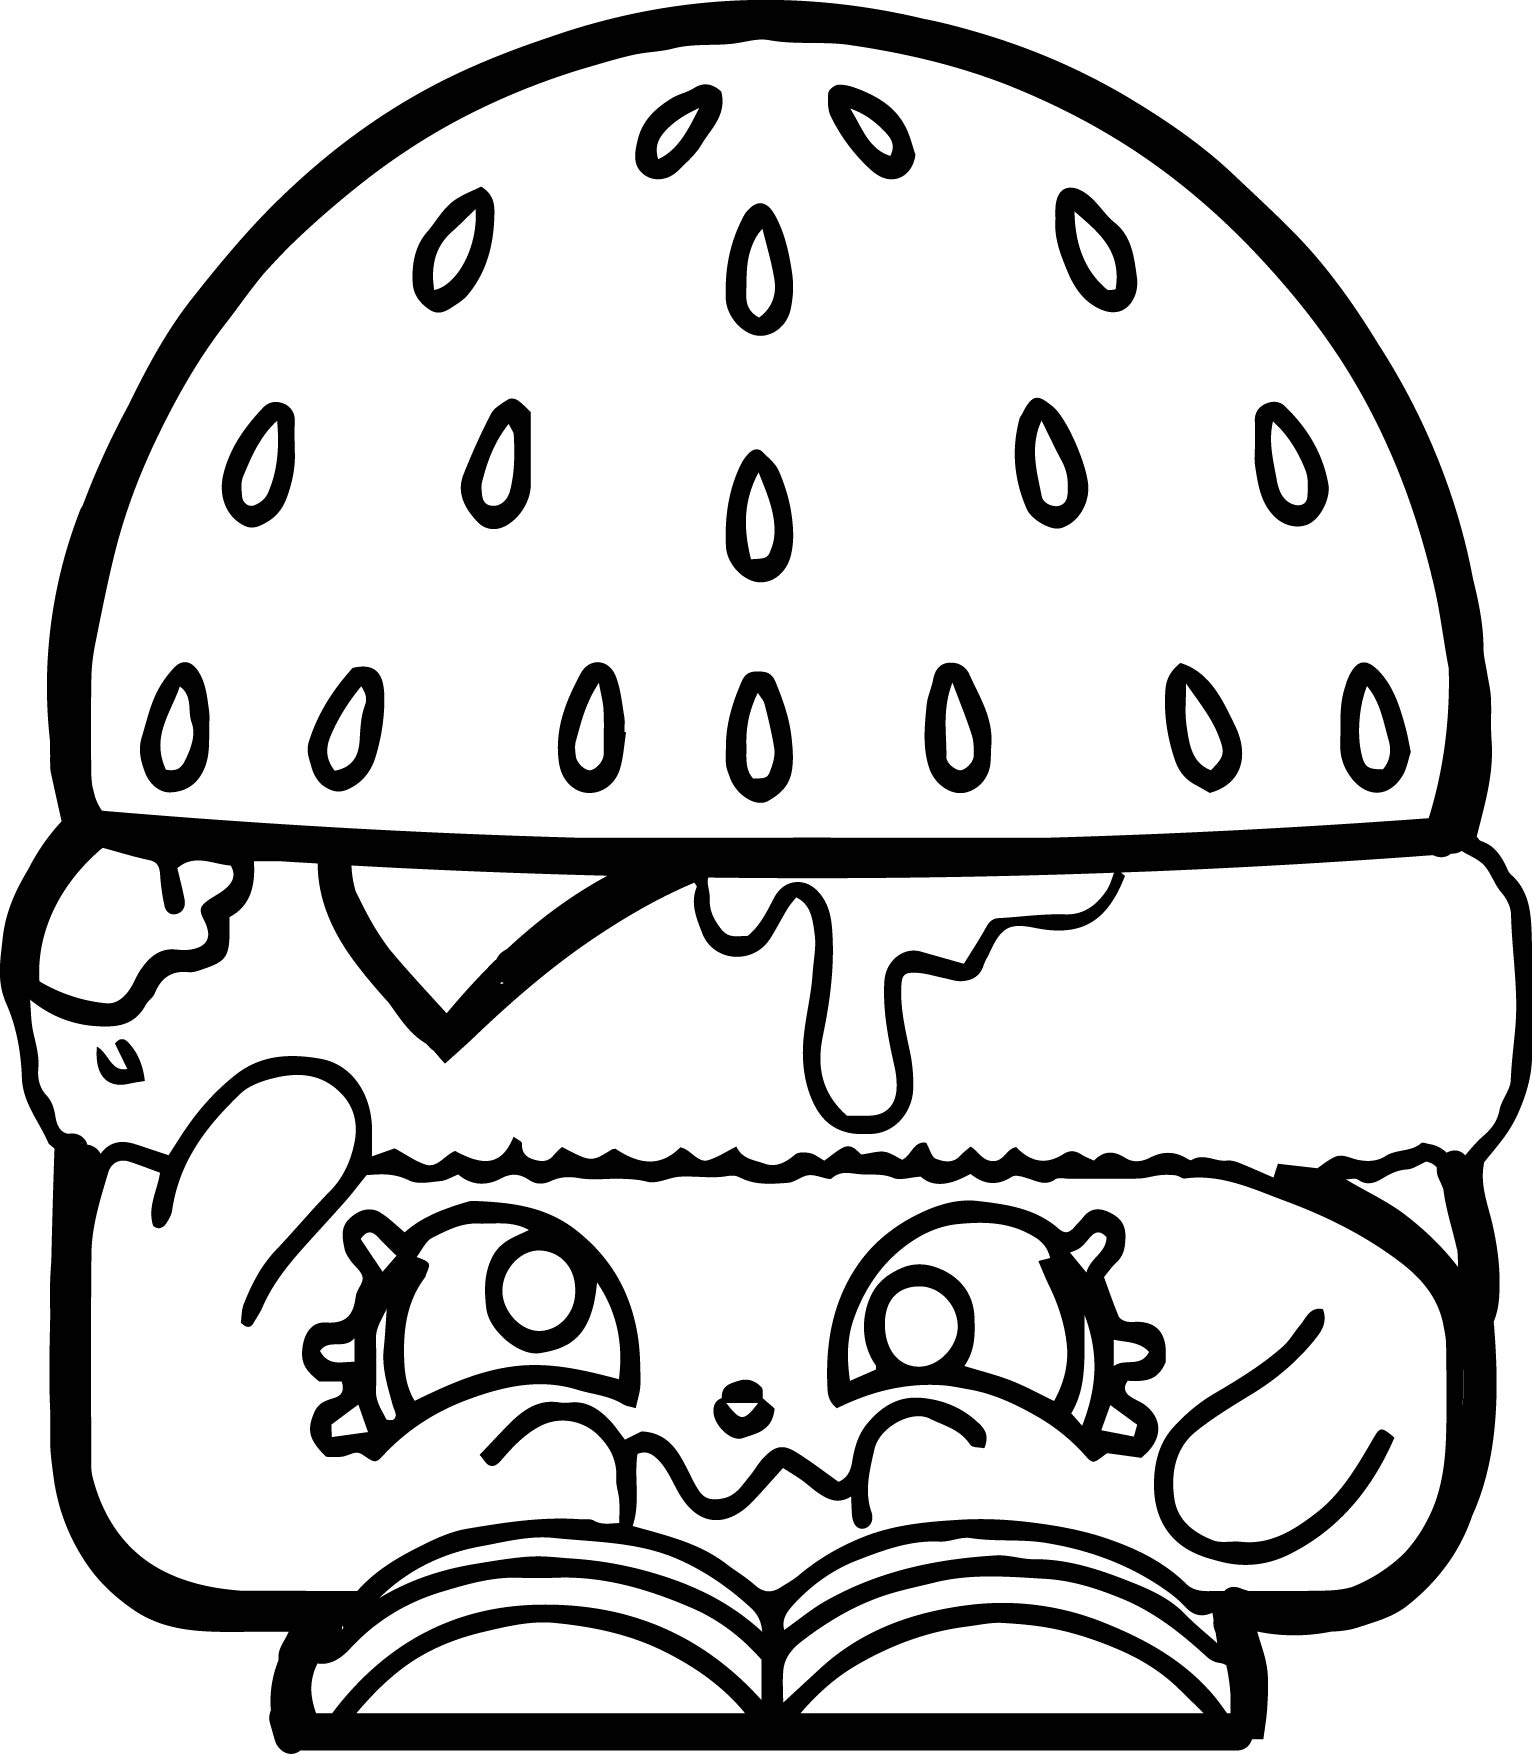 hamburger coloring page - sad hamburger coloring page